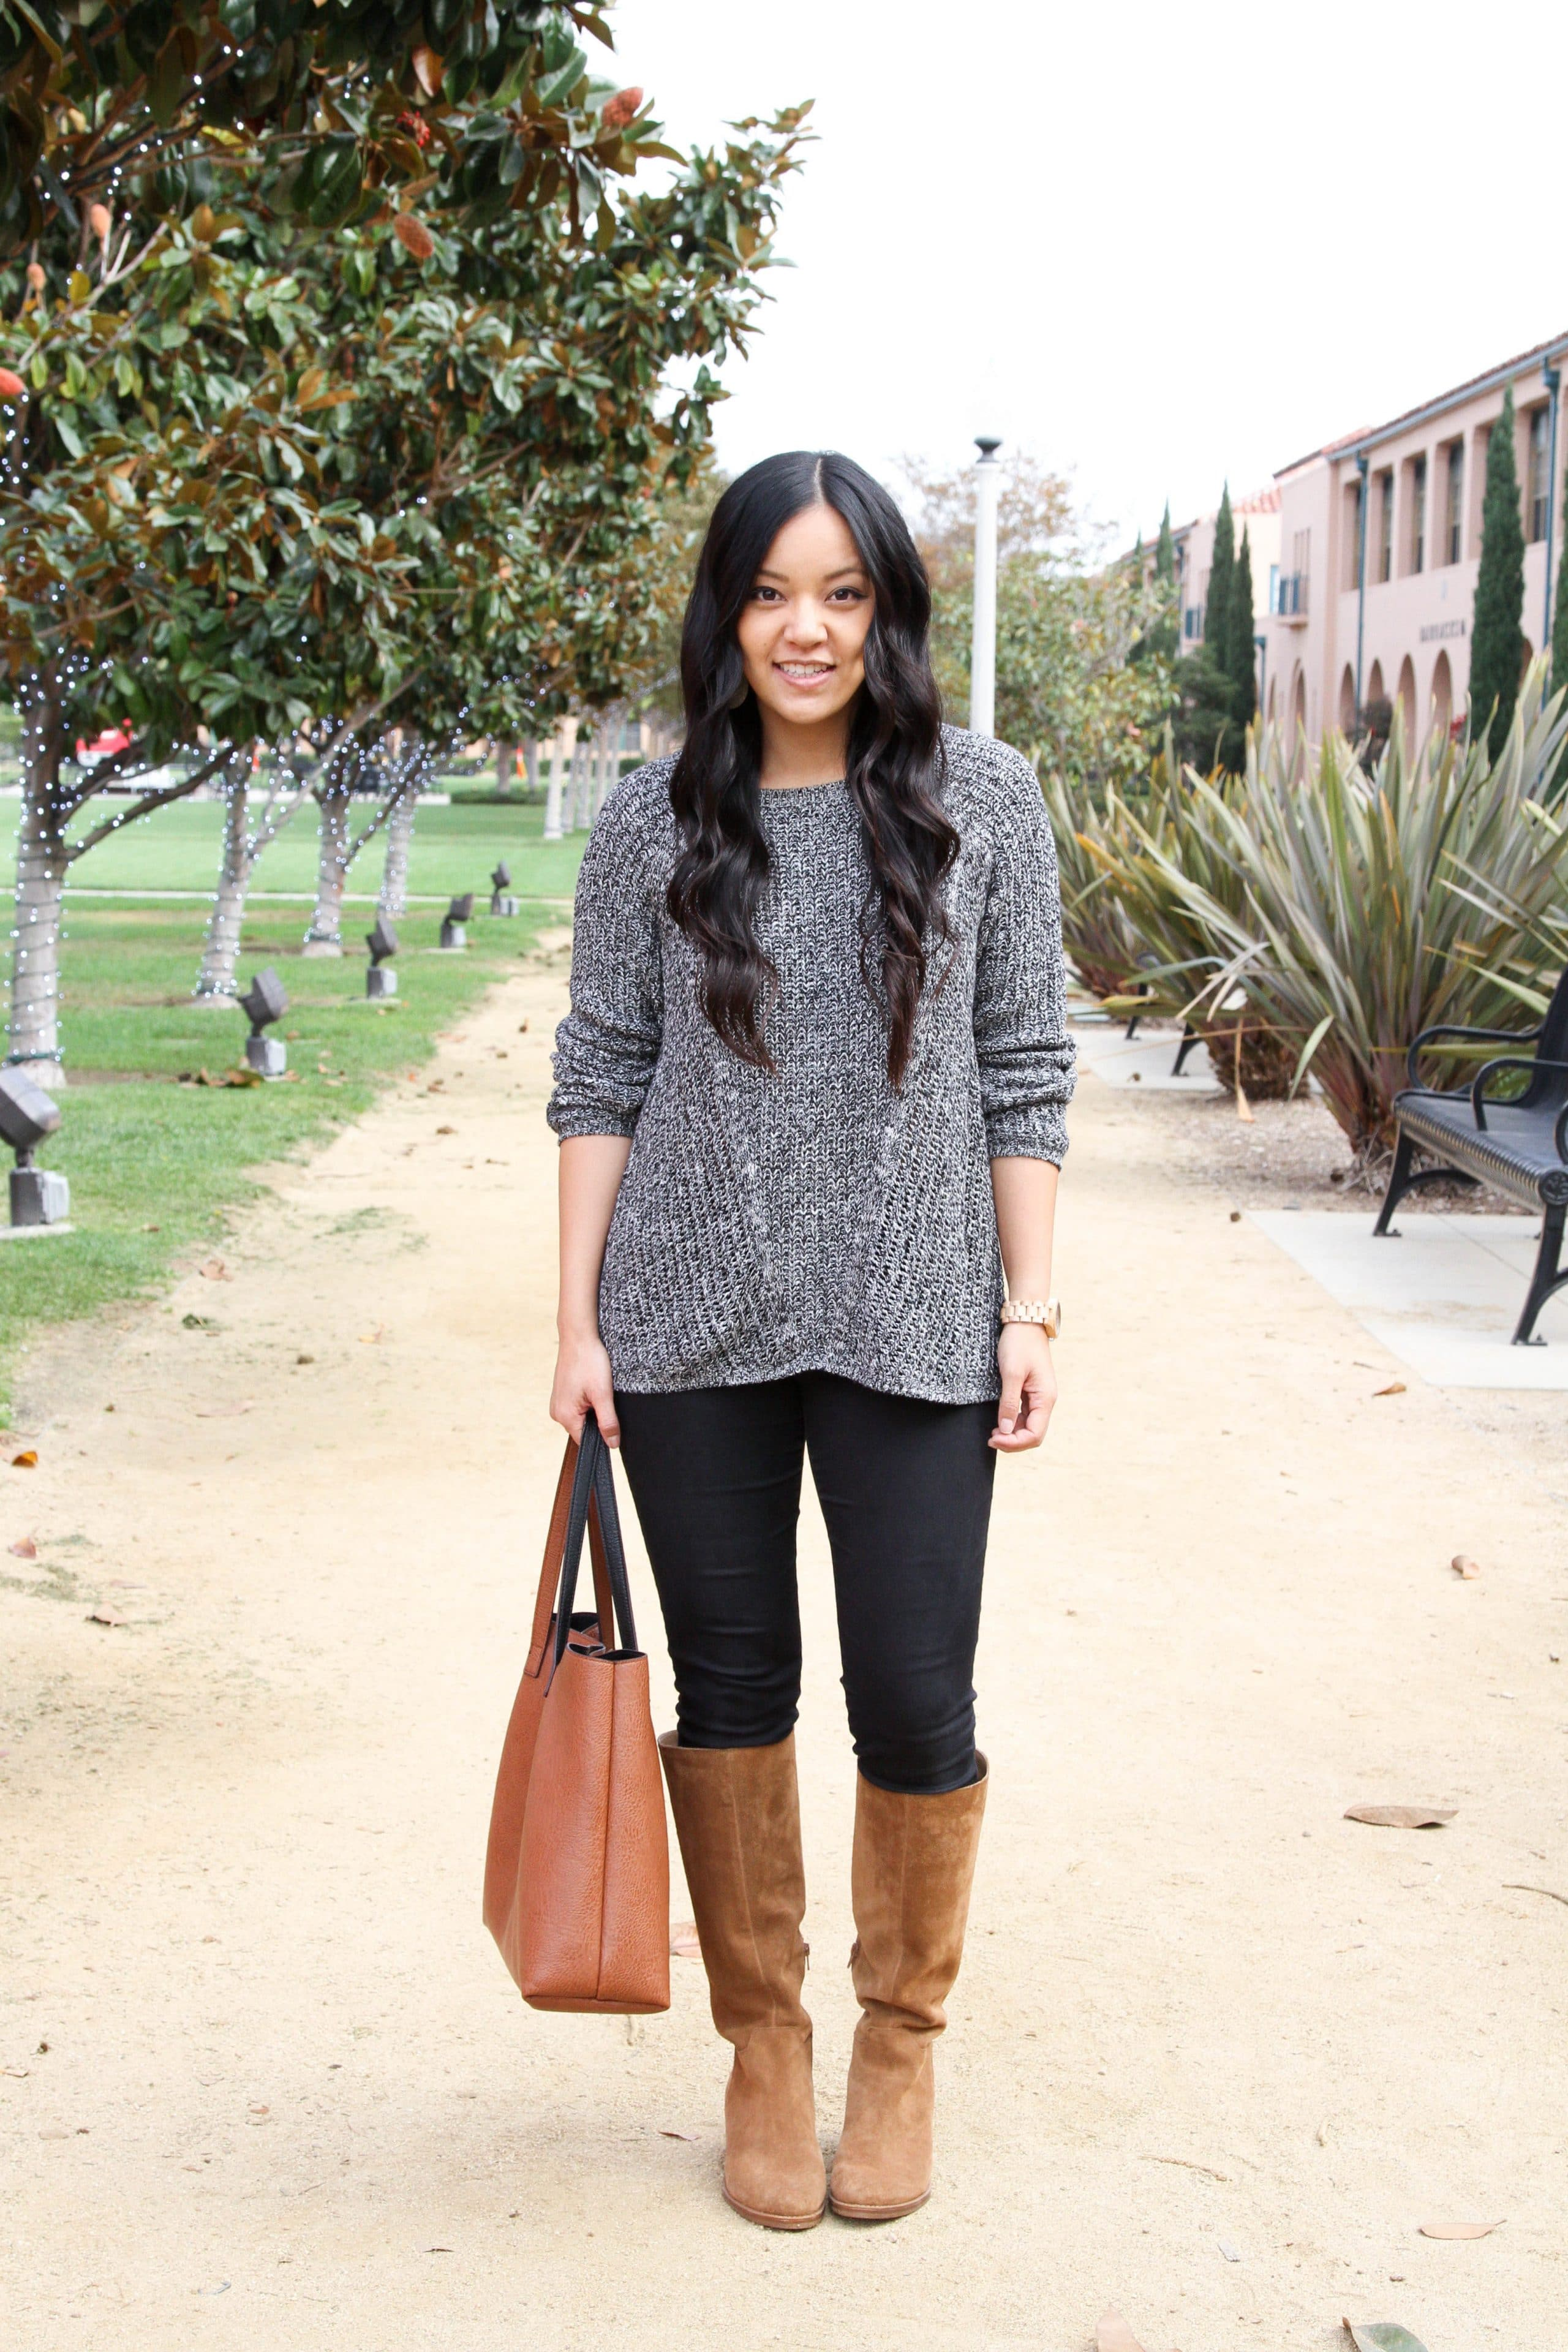 Grey Sweater + Black Jeans + Cognac Boots + Tote